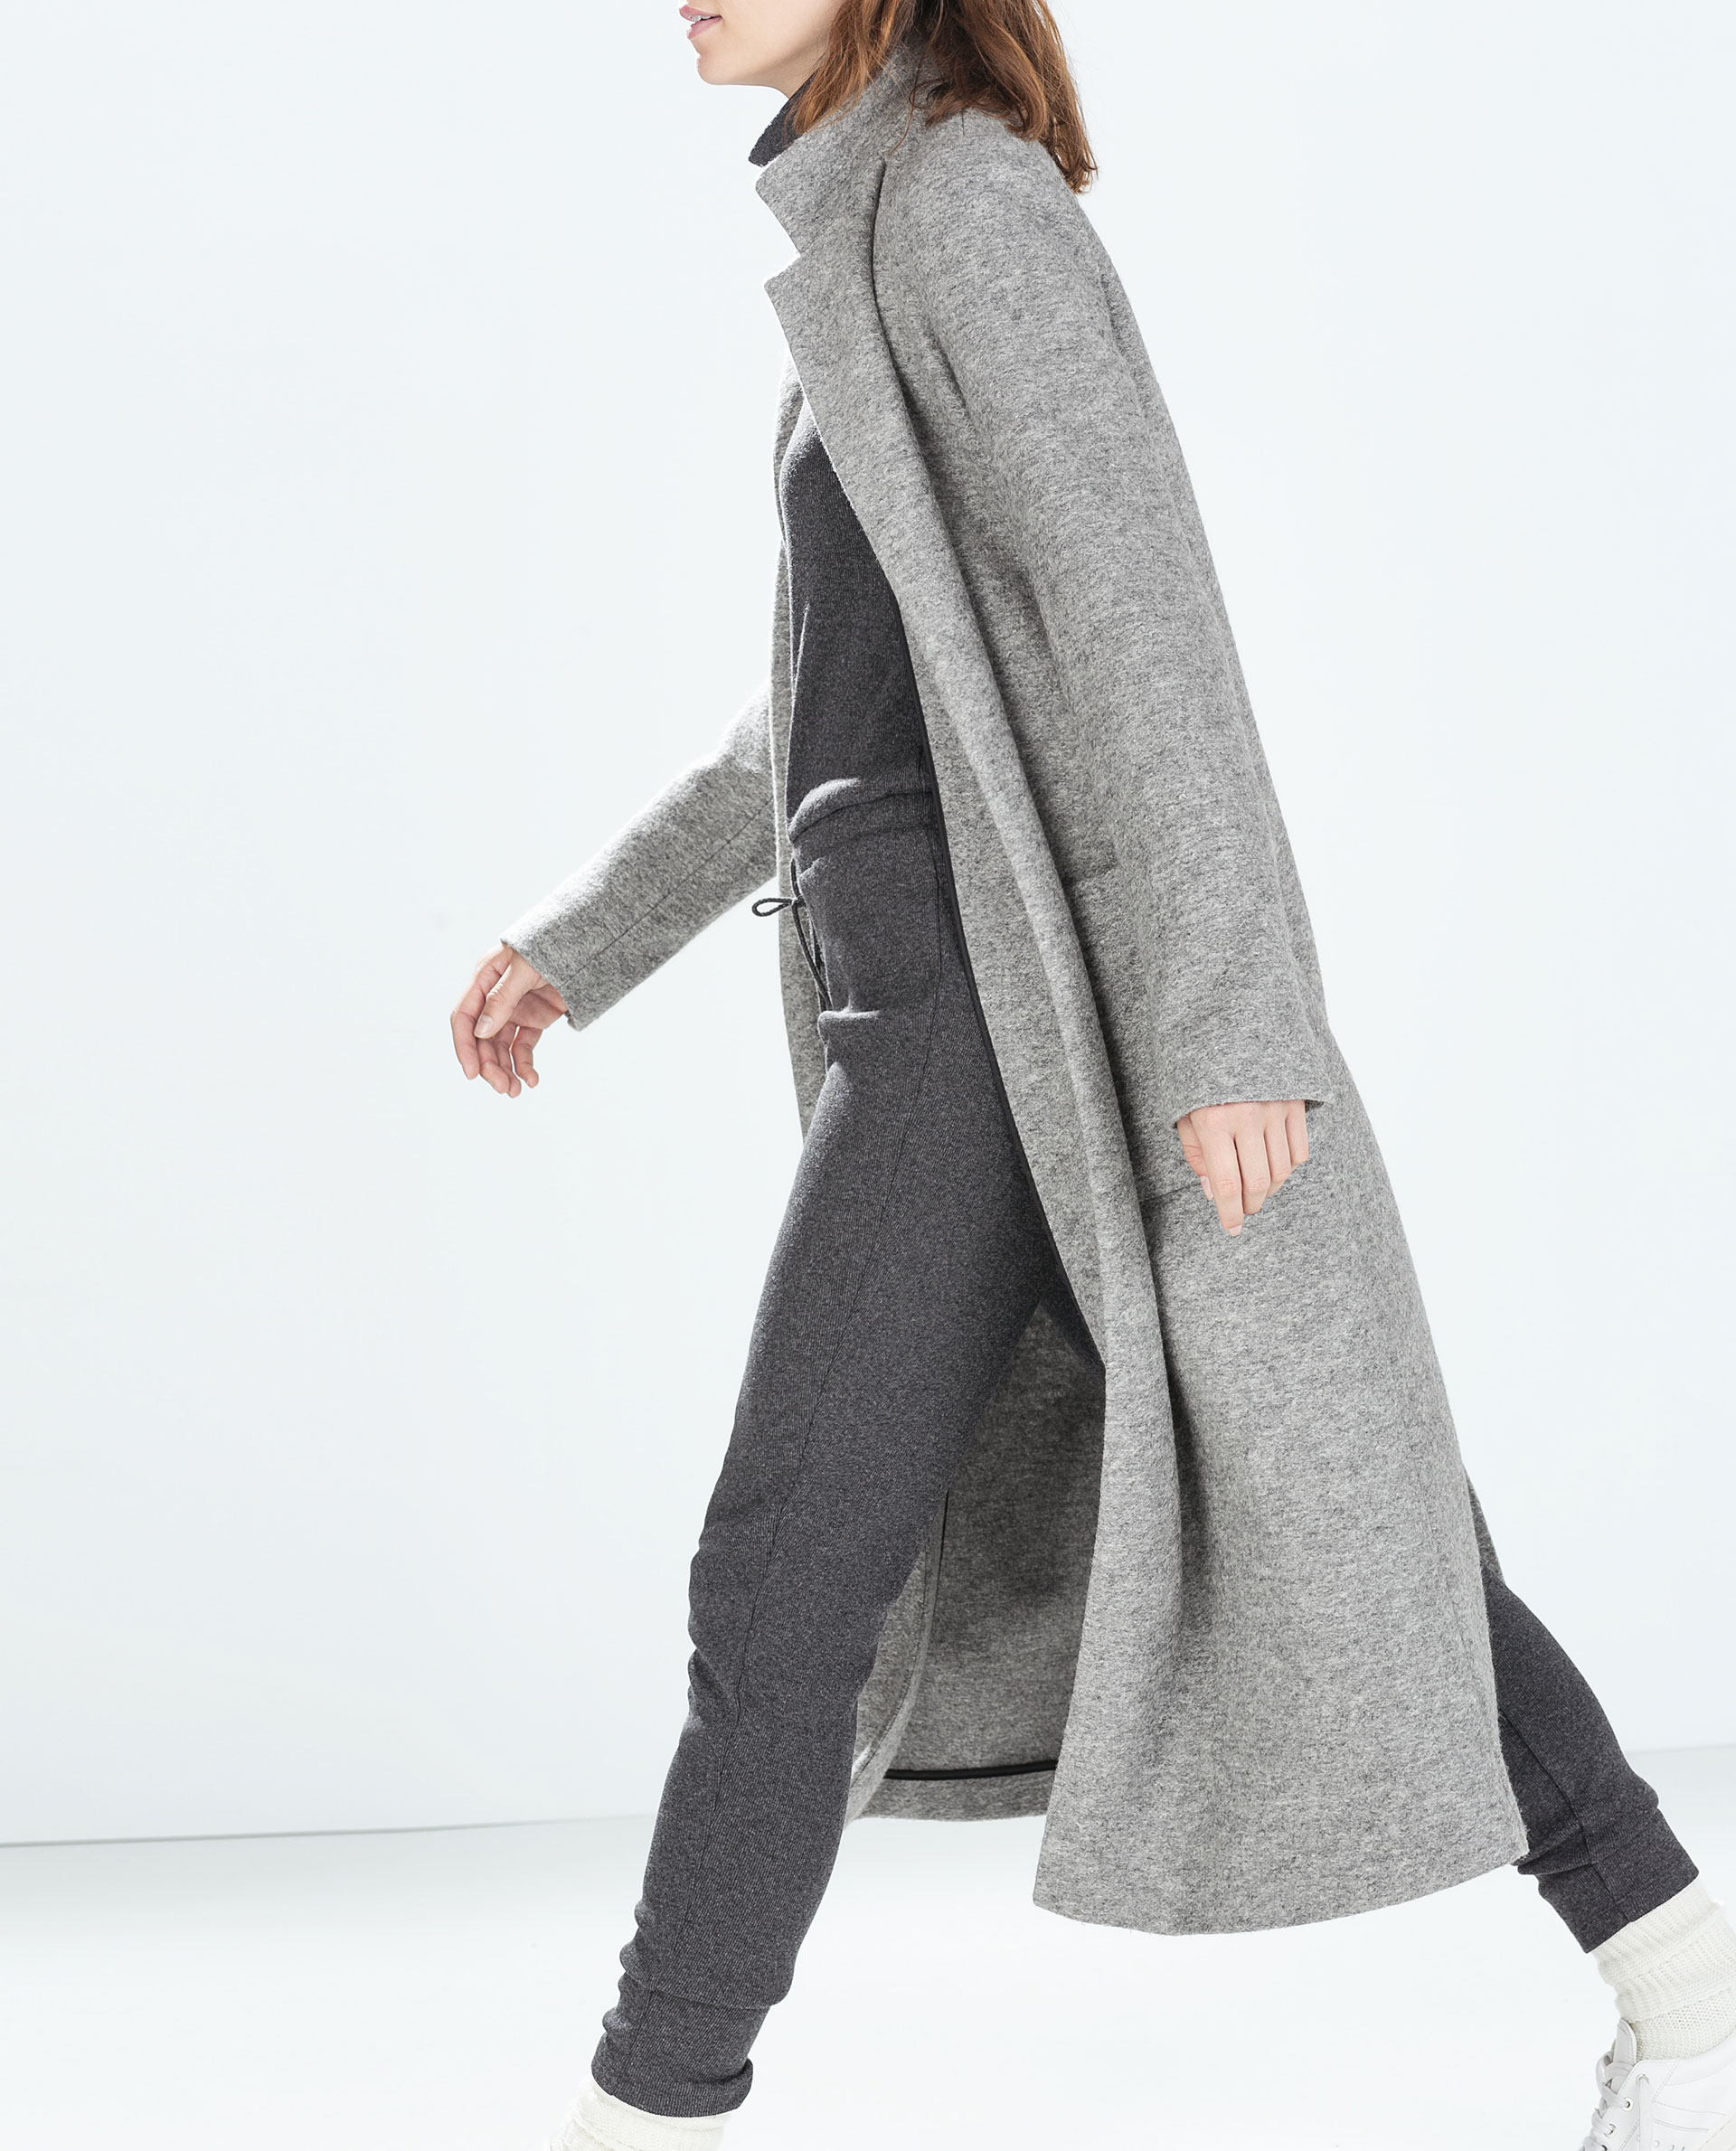 EXTRA LONG COAT Outerwear TRF ZARA United Kingdom